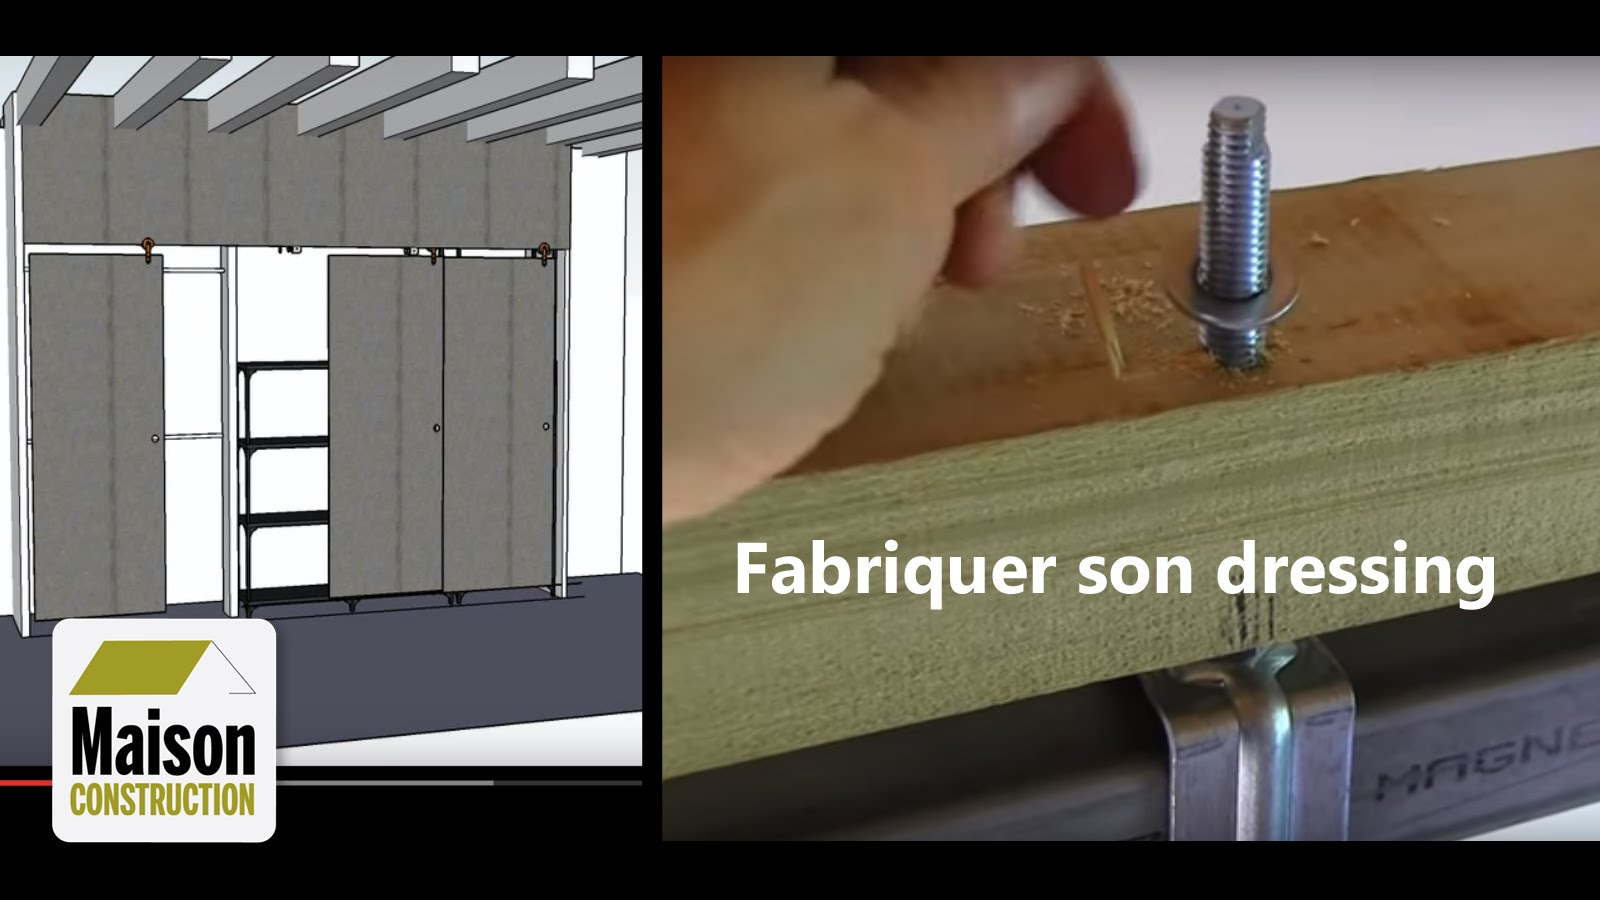 Comment faire son dressing - Fabriquer son dressing ...